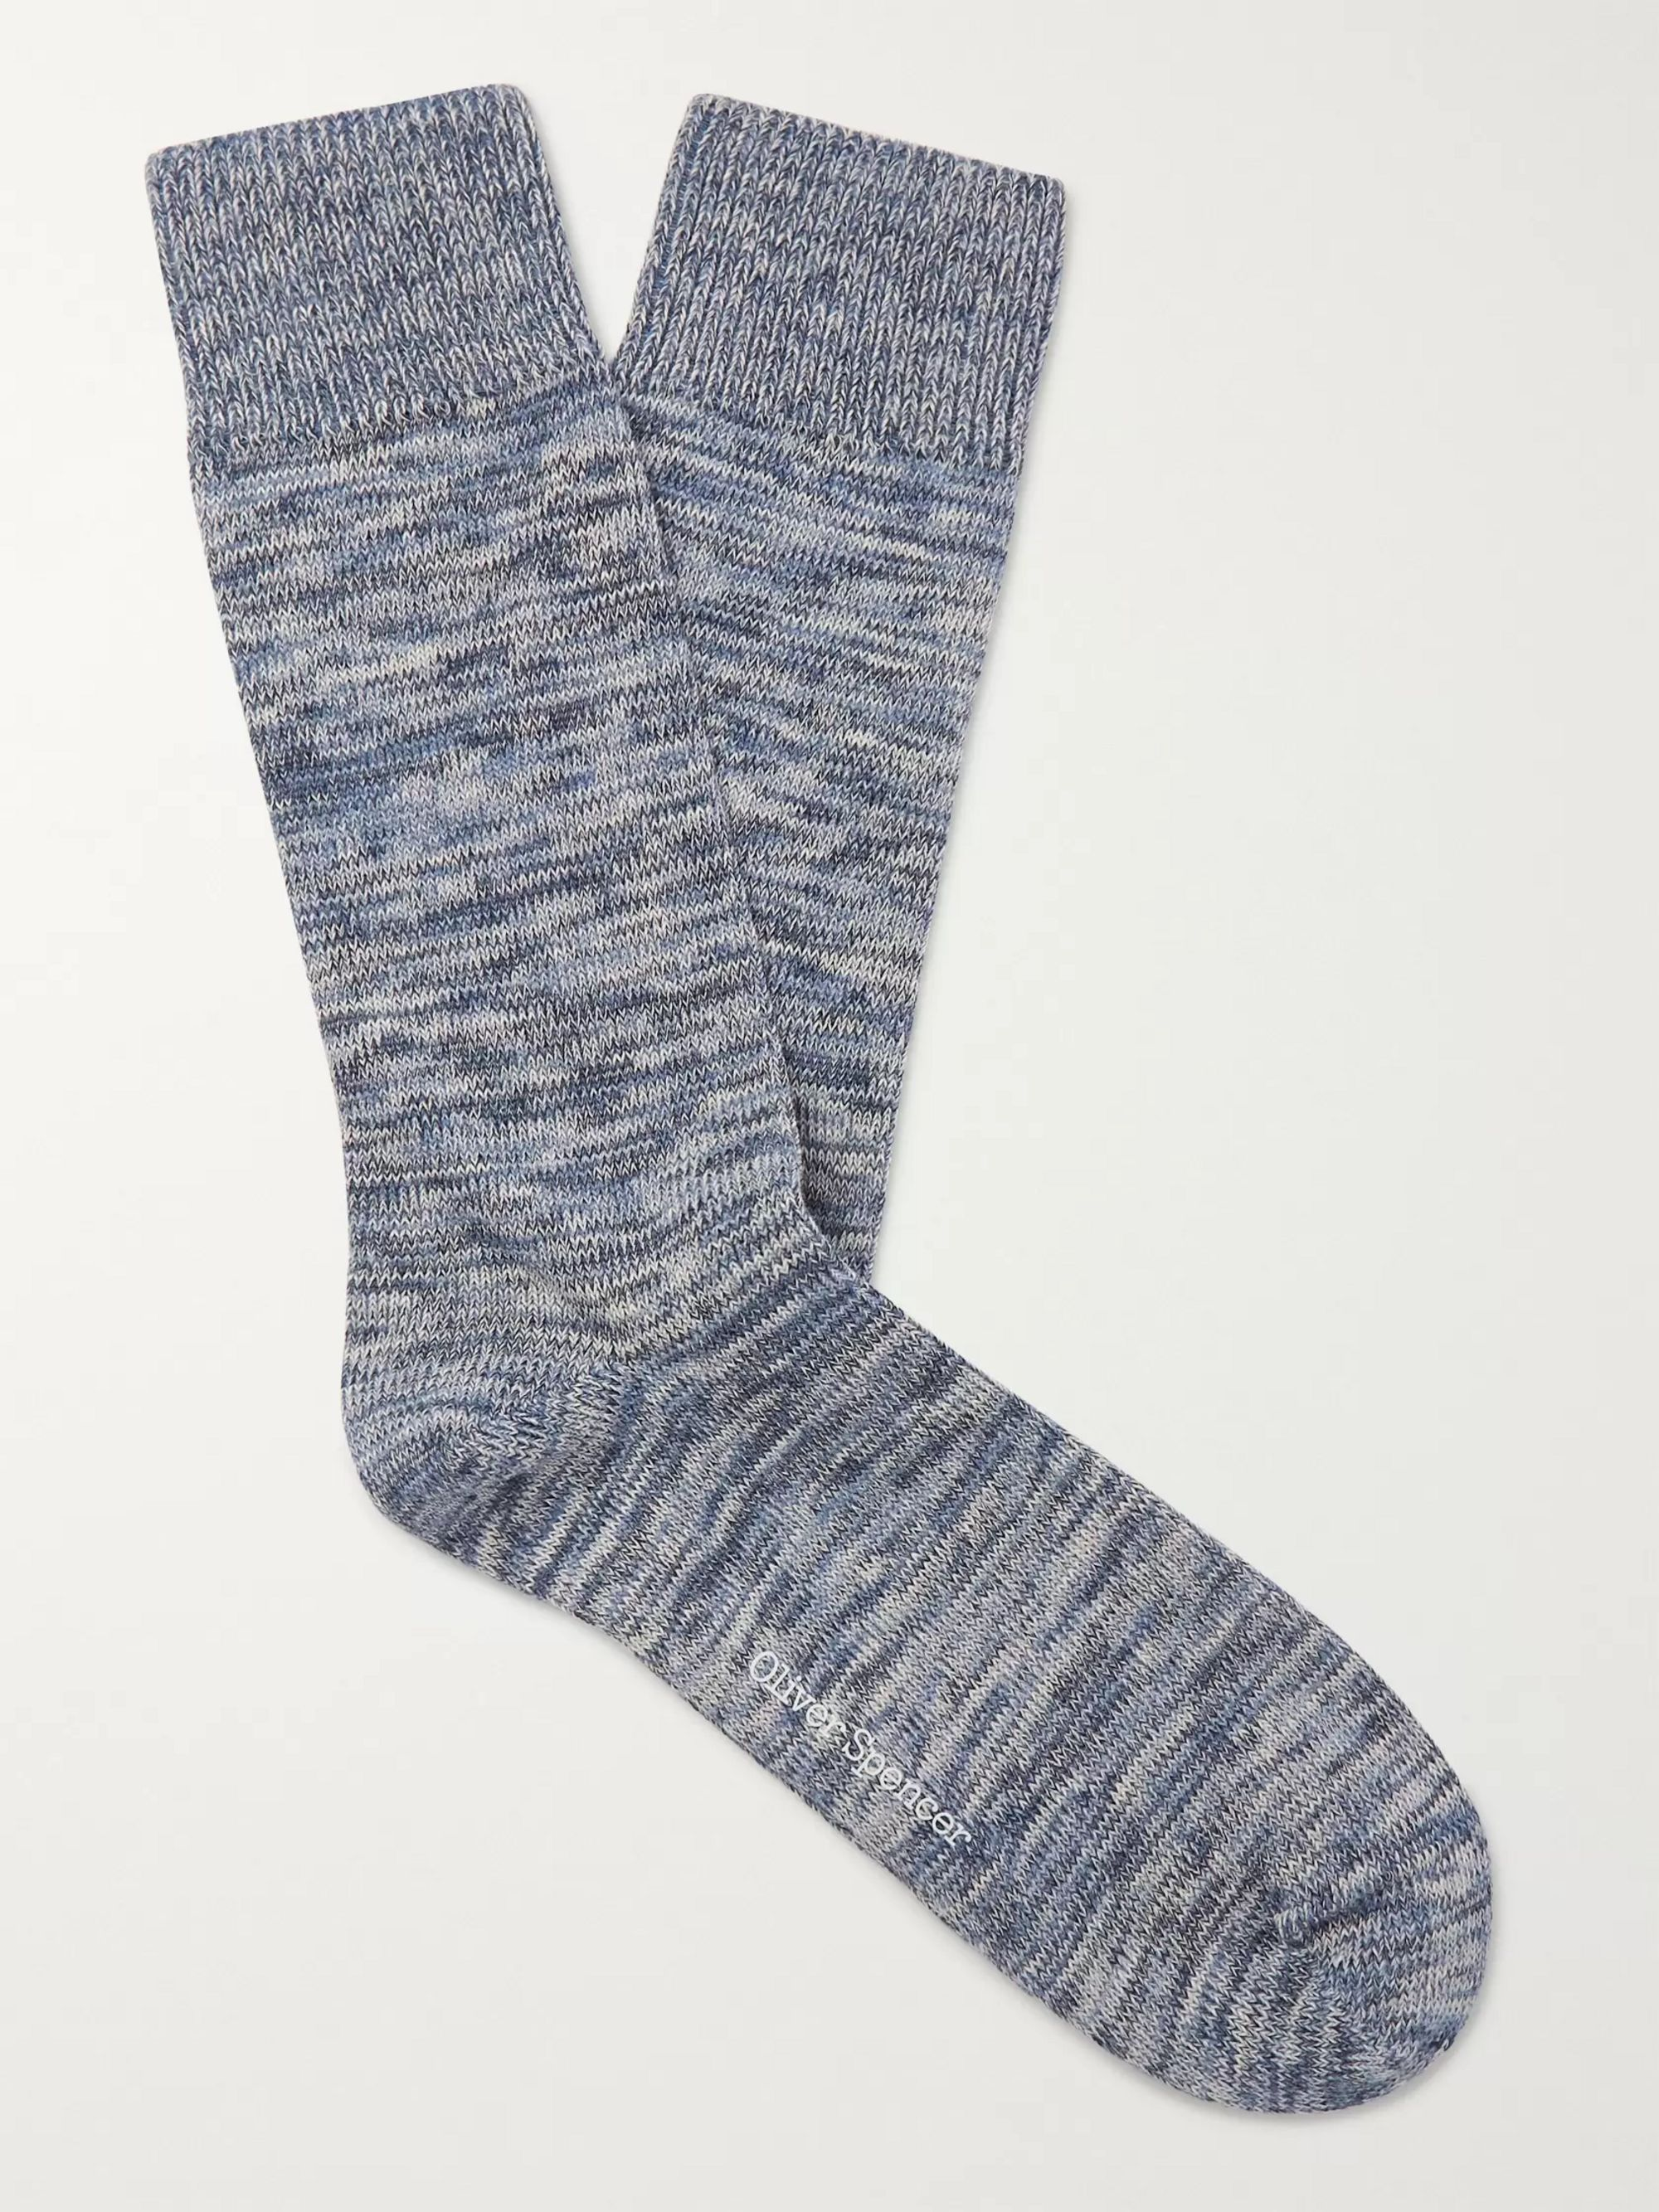 Oliver Spencer Loungewear Miller Stretch Cotton-Blend Socks